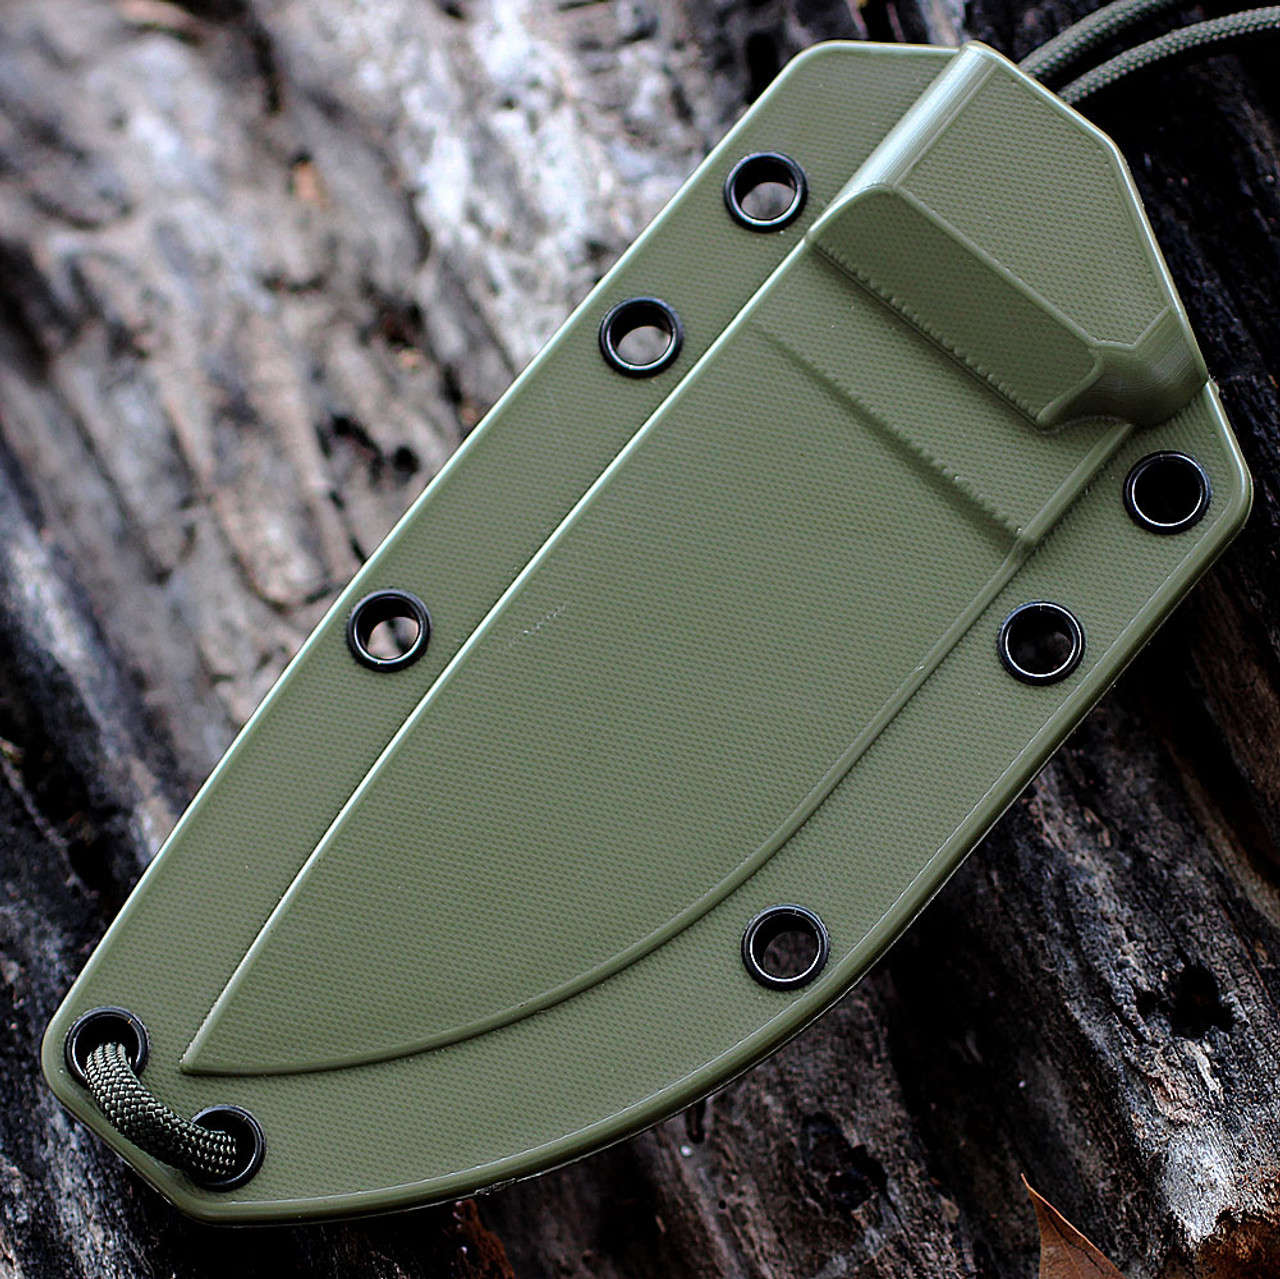 ESEE 3P-MB-DT, Plain Edge,Foliage Green Molded Sheath w/ Molle Back